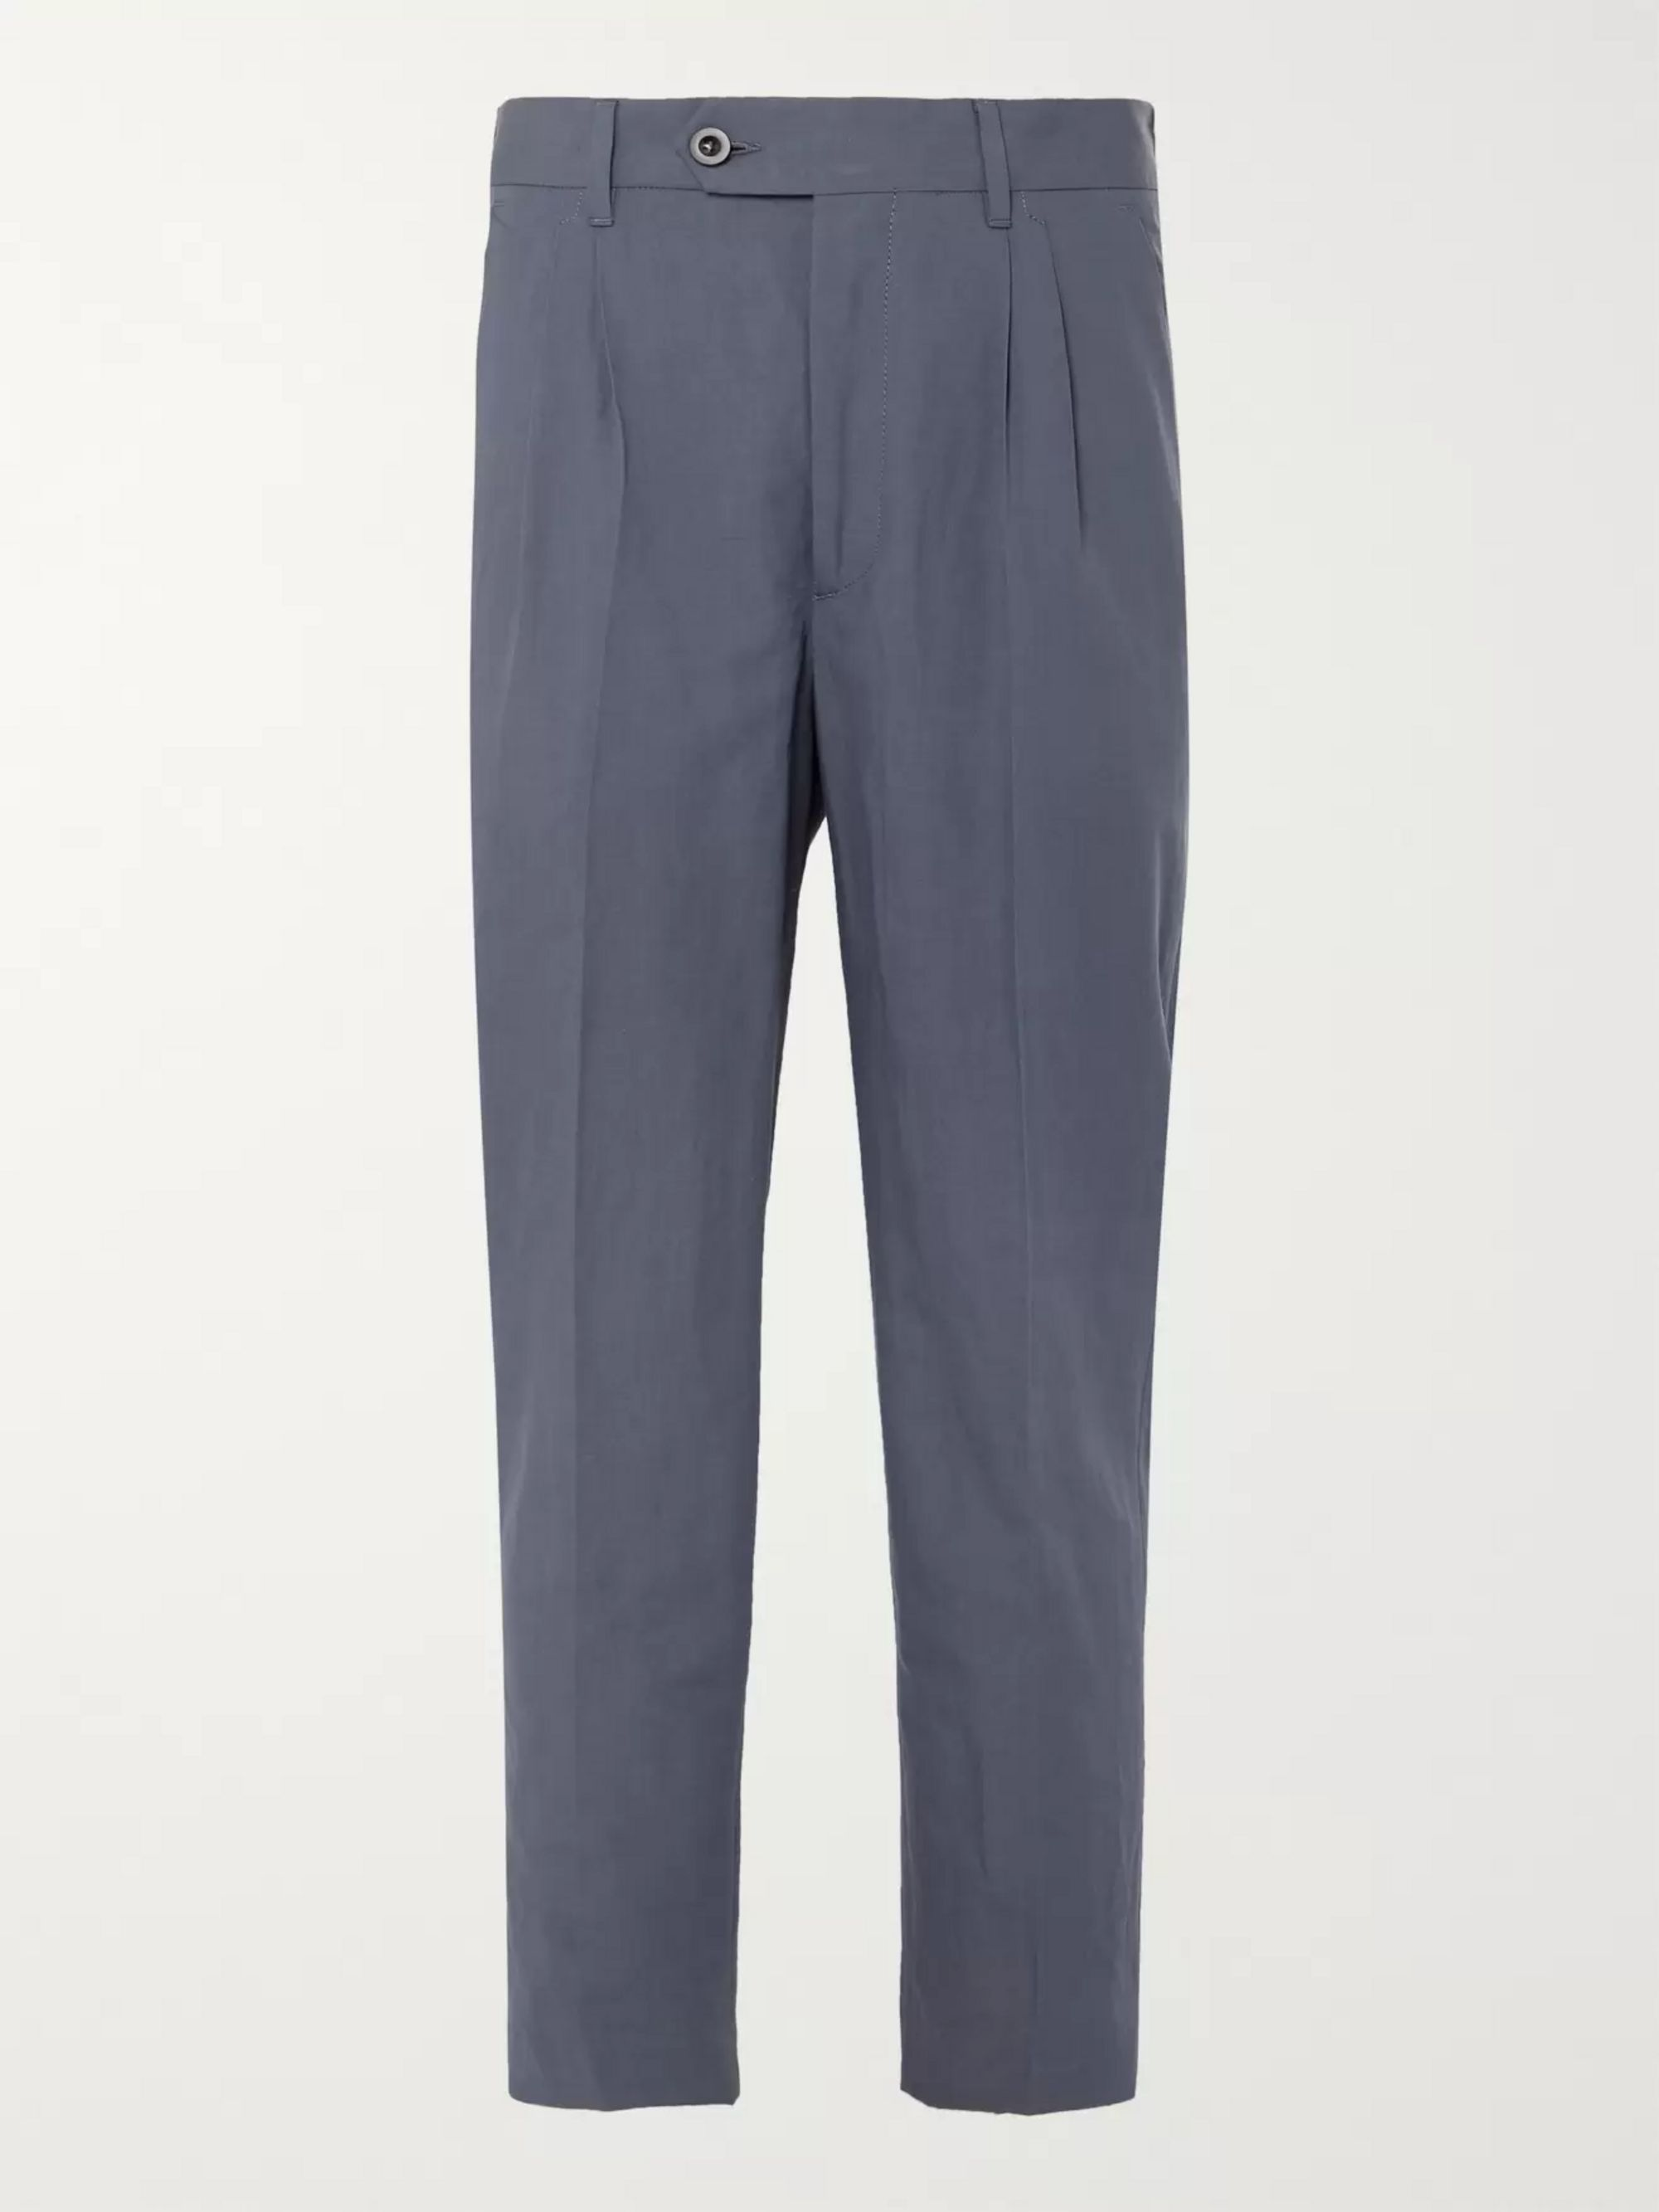 Mr P. Tapered Pleated Linen and Cotton-Blend Cropped Suit Trousers